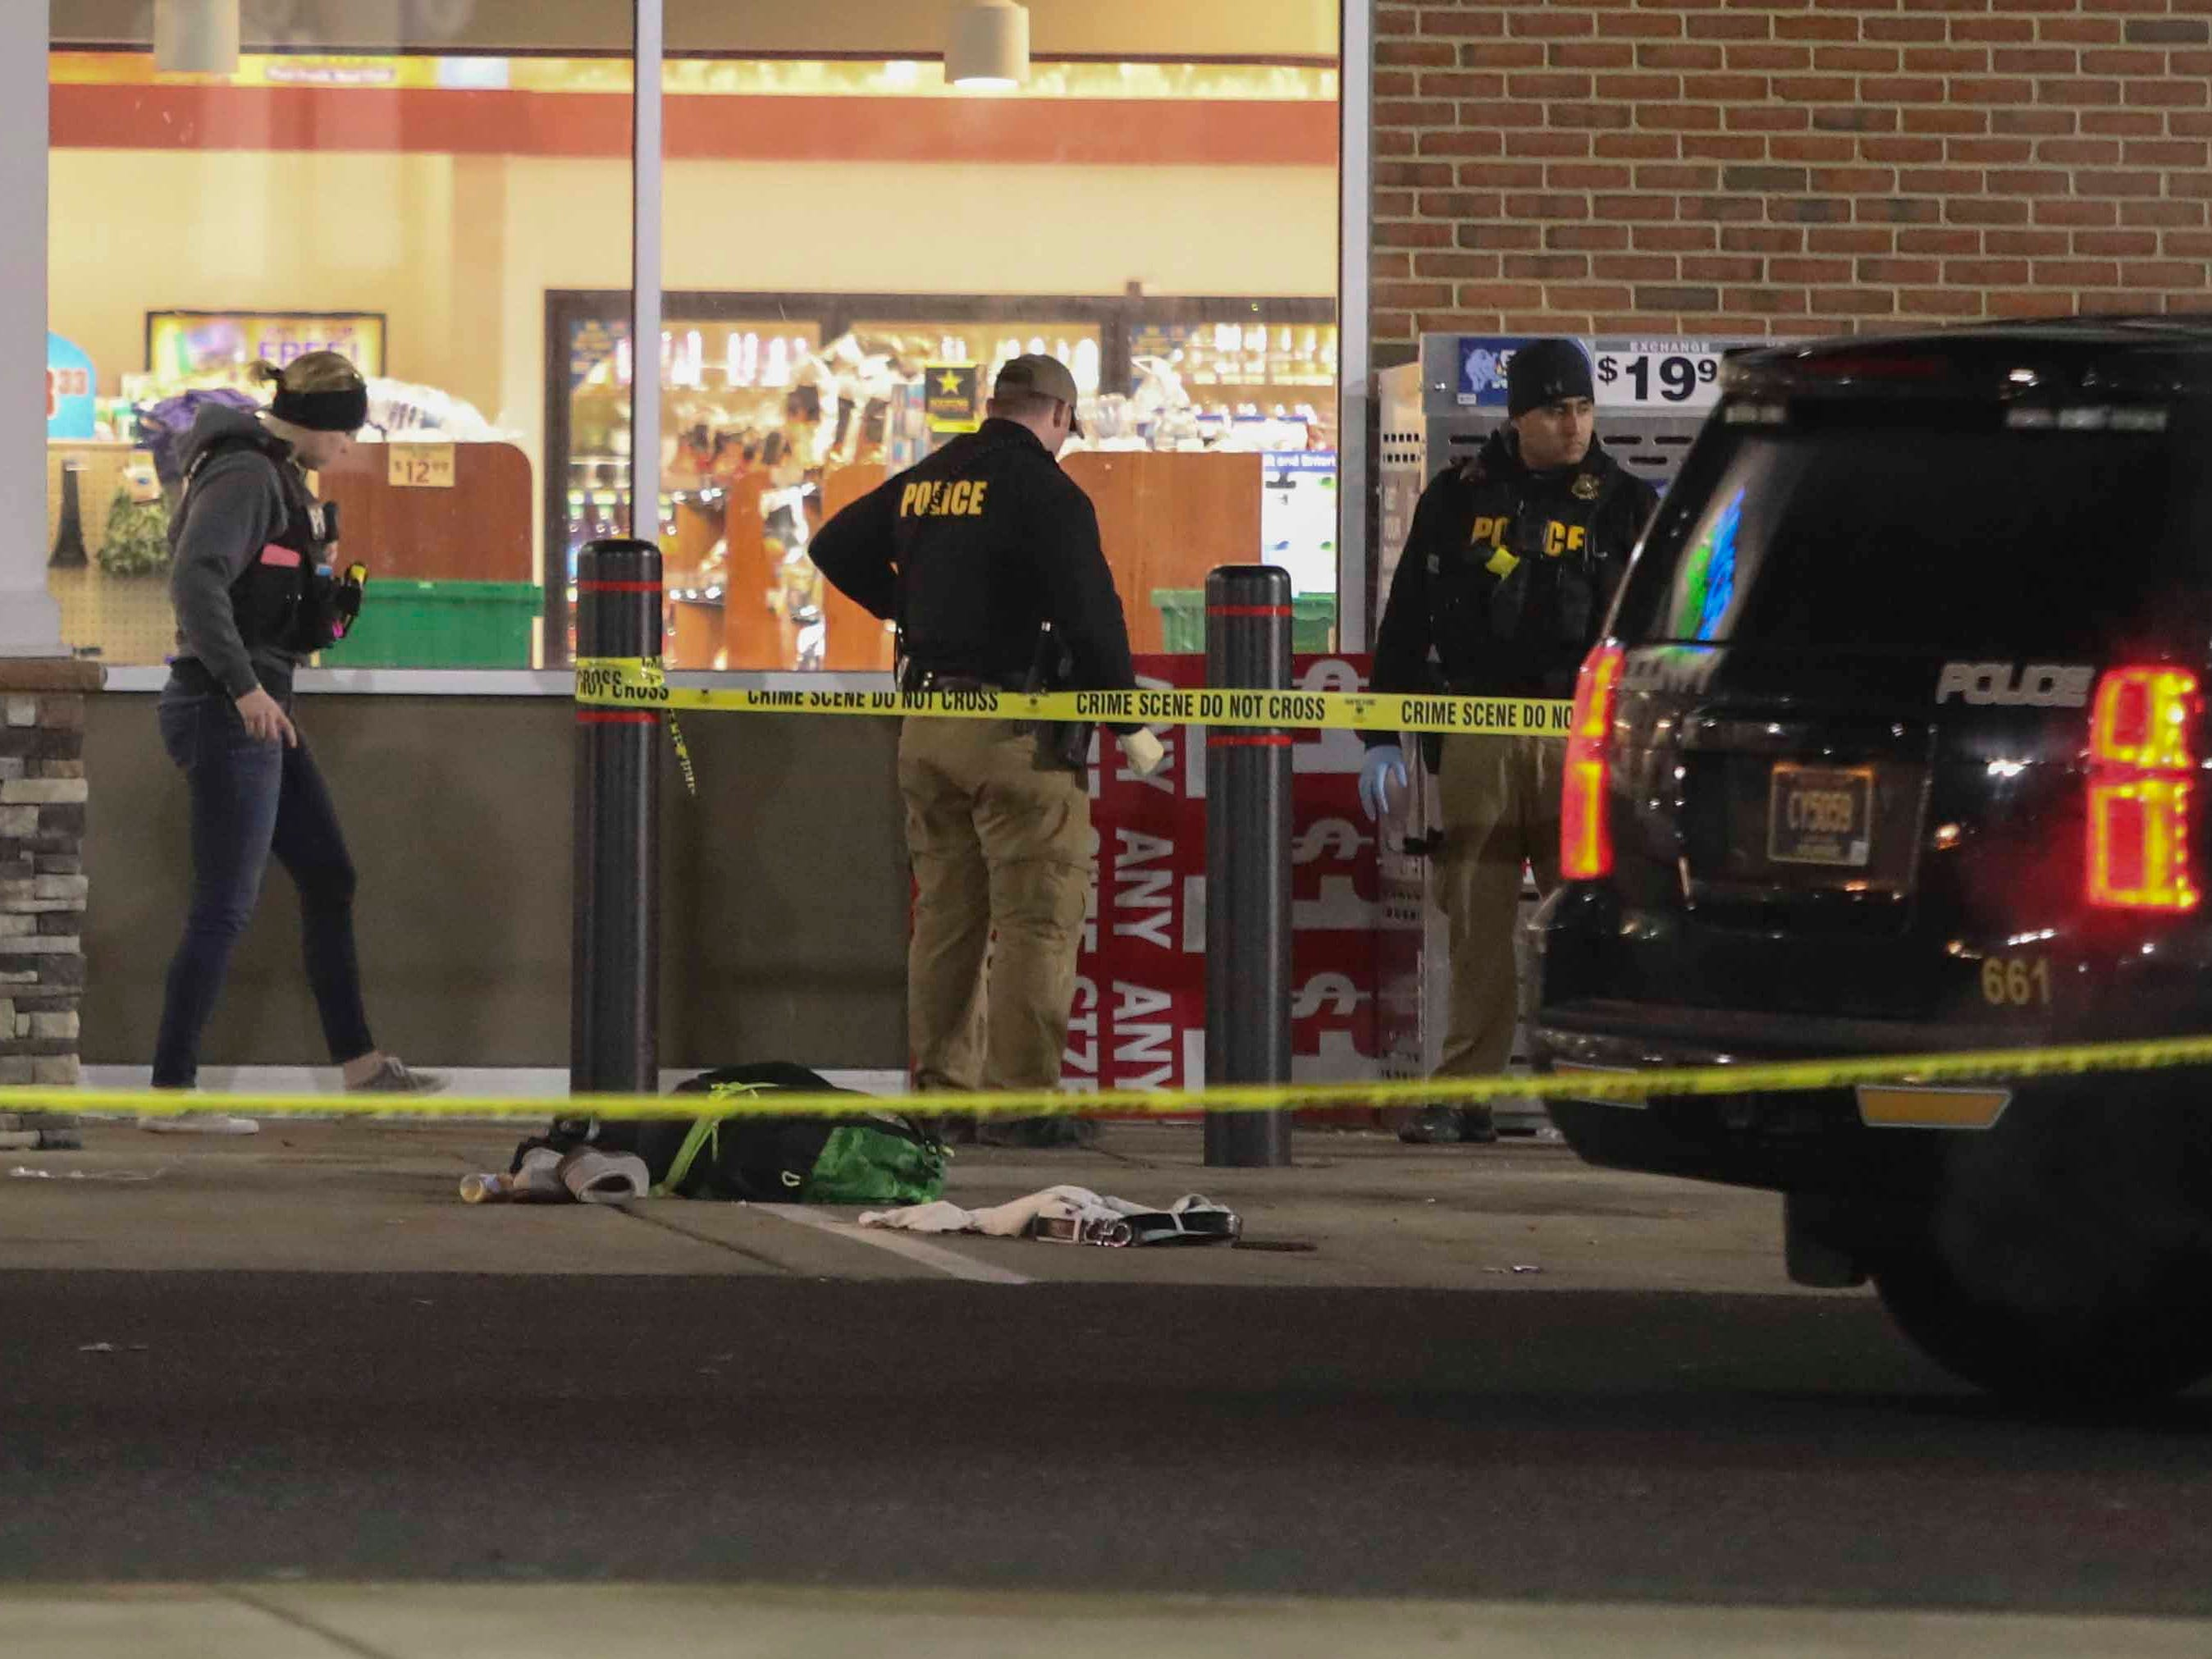 New Castle County Police investigate after a report of a shooting at the Royal Farms store on U.S. 40 in Bear Friday shortly before 10:30 p.m.